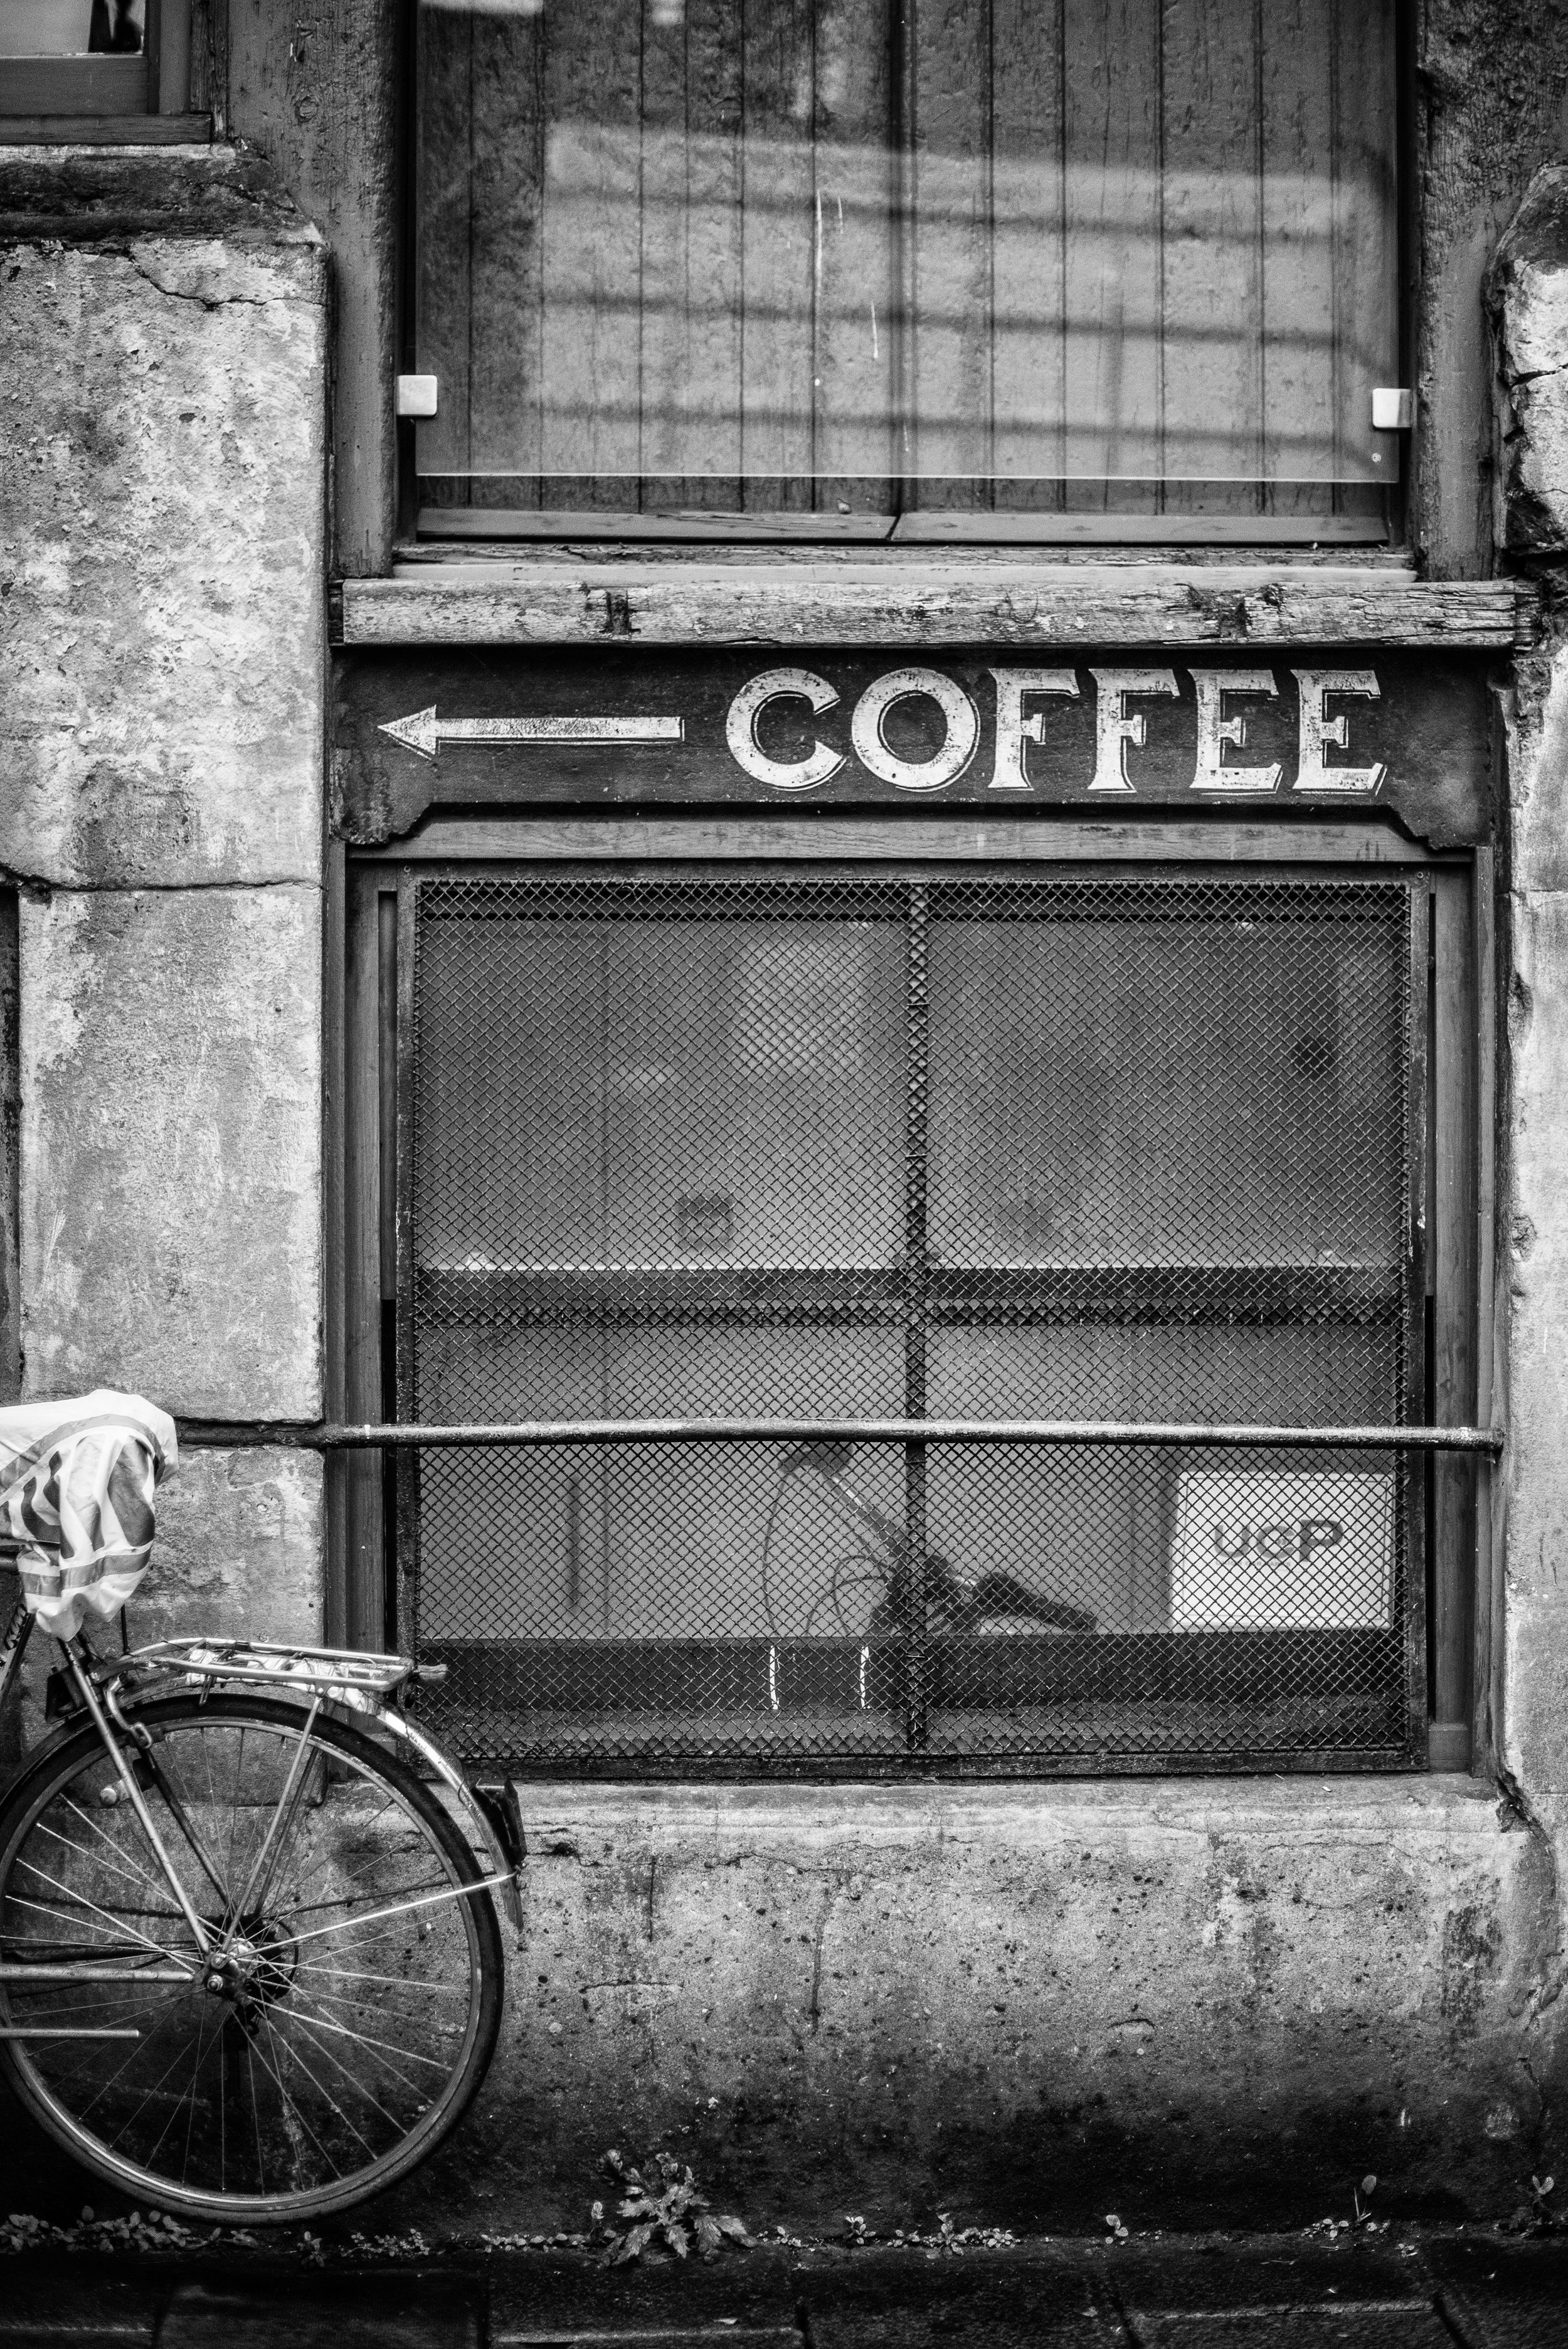 Coffee signage with arrow on a London side street